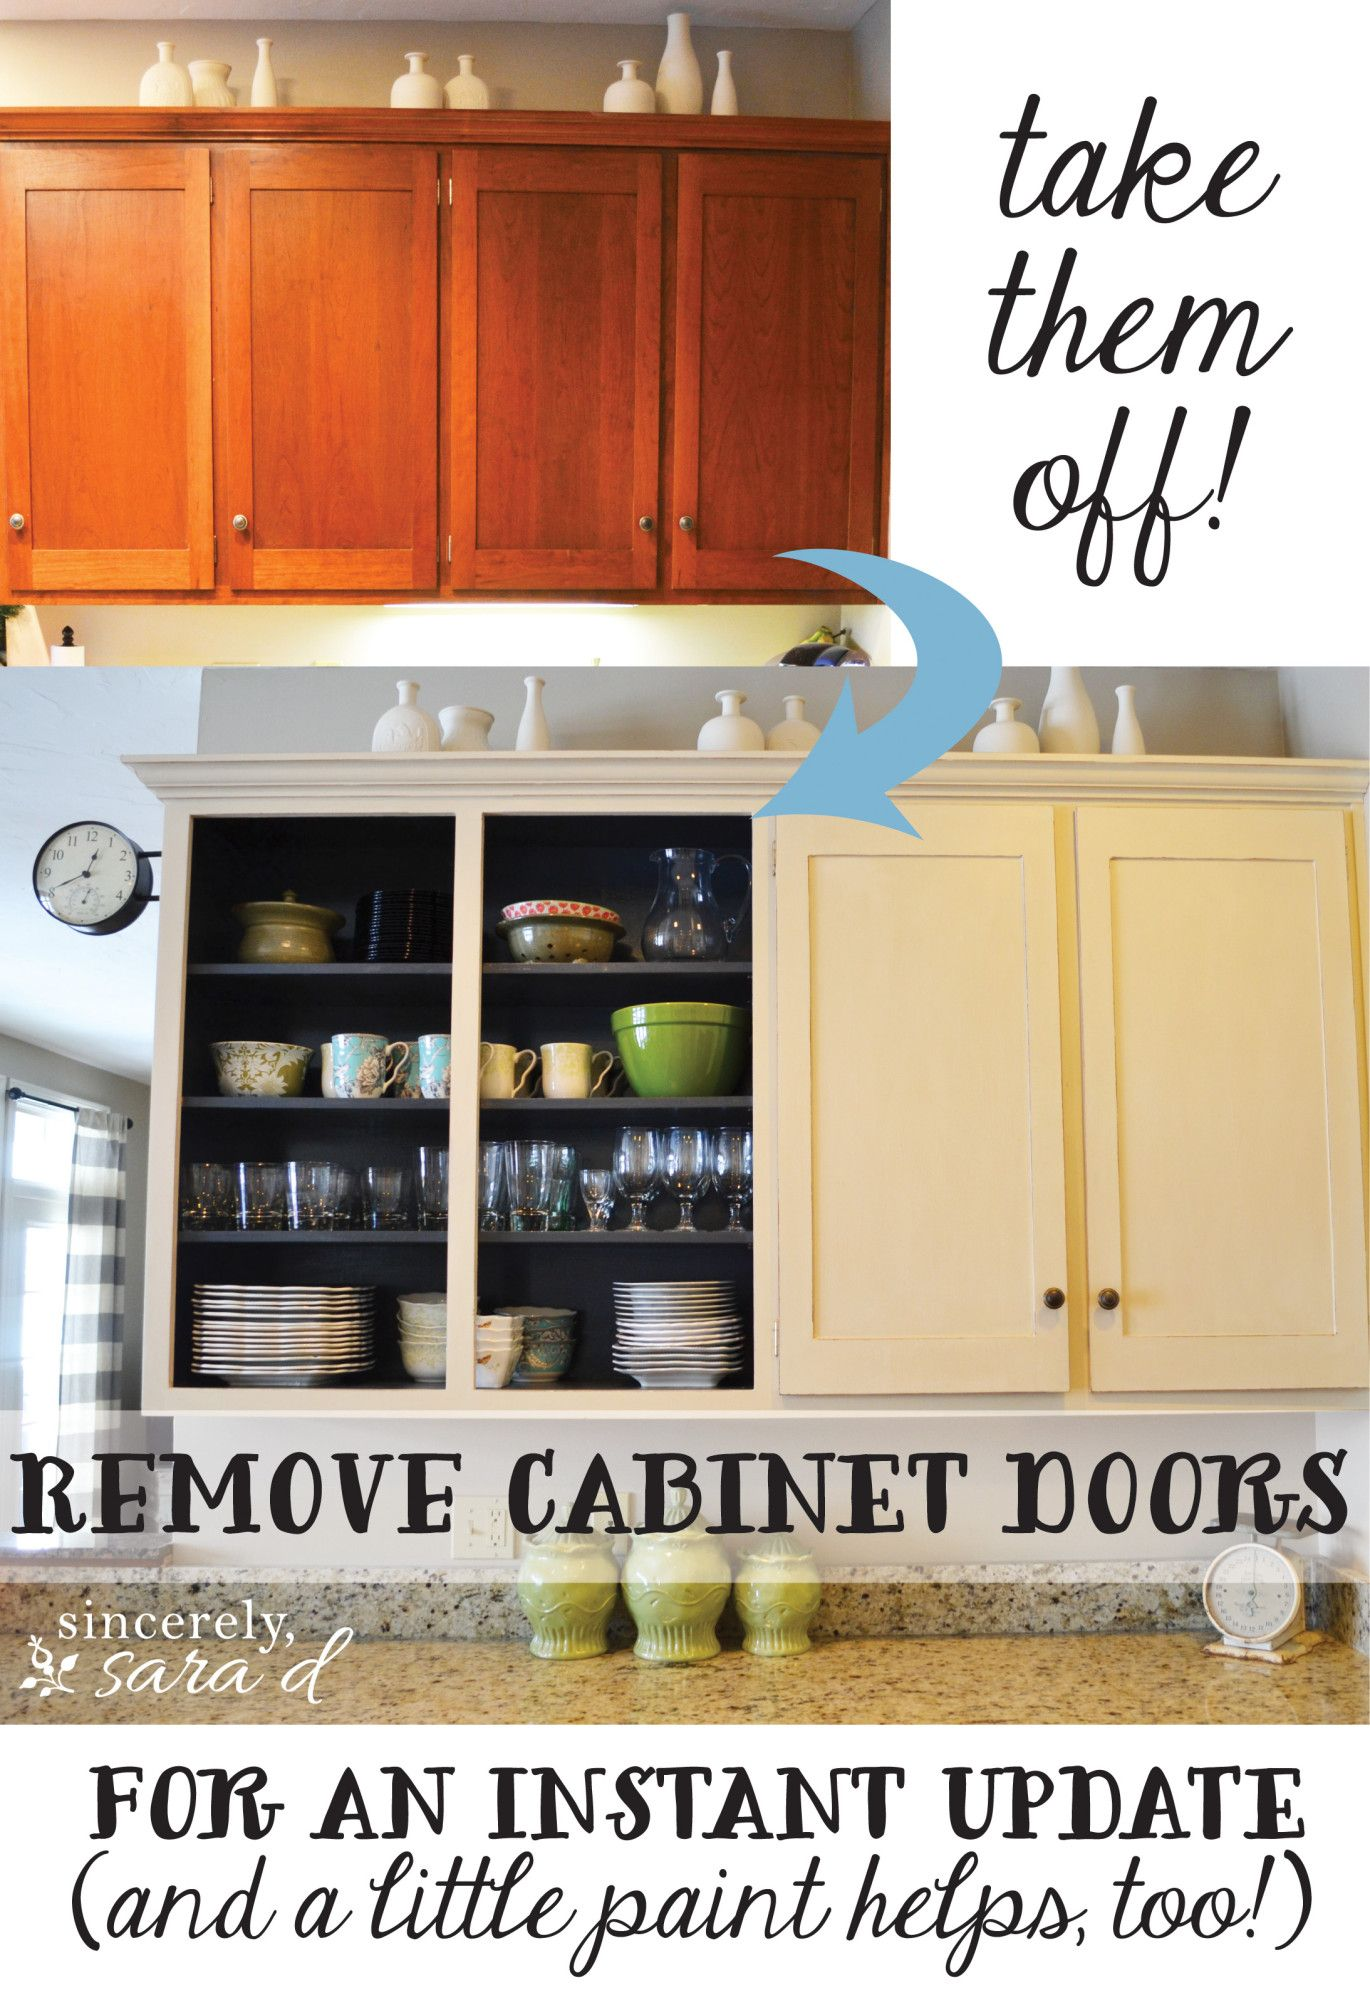 Remove Cabinet Doors - Instant Kitchen Update | Kitchen cabinet ...